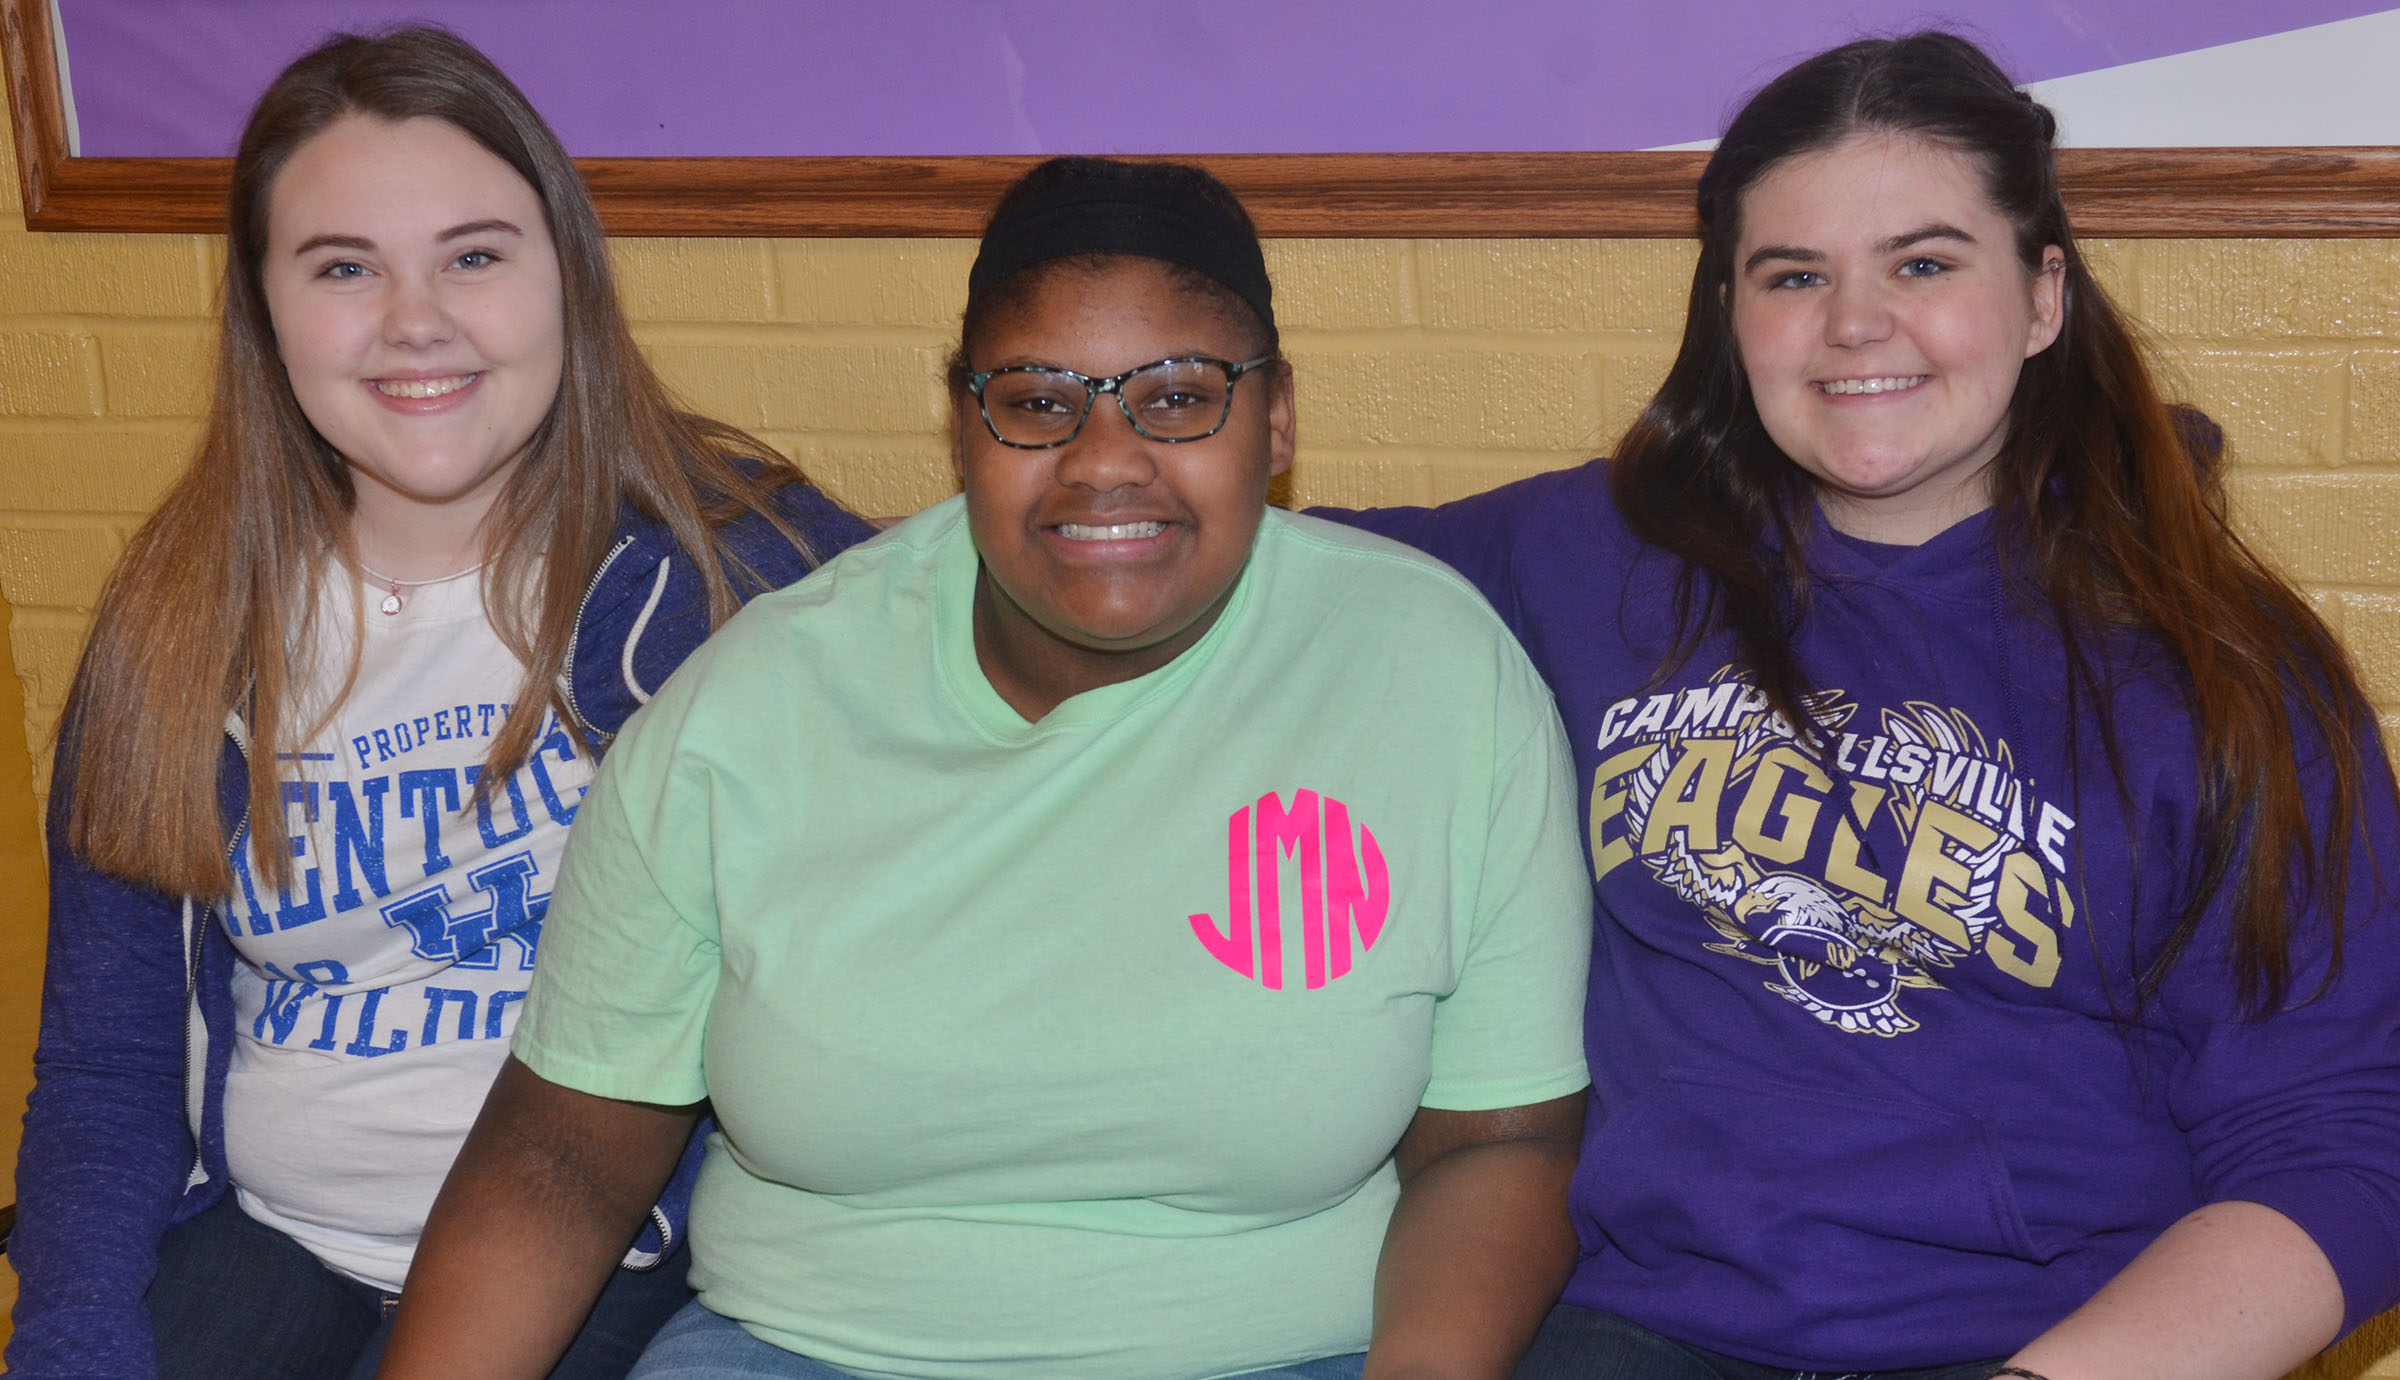 Three CHS FCCLA students were recently elected to serve as regional officers. Those elected include, from left, junior Haley Fitch, who will serve as vice president of individual programs; freshman Jakyia Mitchell, who is vice president of community service; and junior Vivian Brown, who will serve as vice president of parliamentary law.